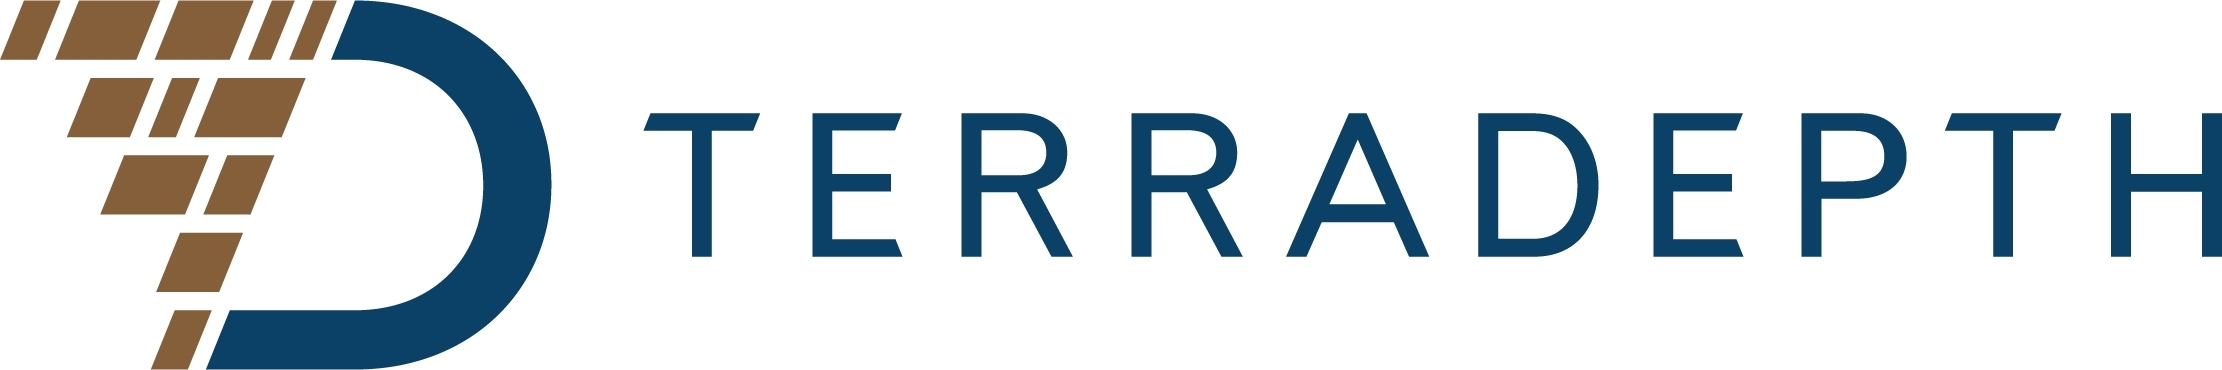 Terradepth Announces Results of Phase 1 Underwater Autonomous Submarine Trials to Map the Earth's Oceans | Business Wire